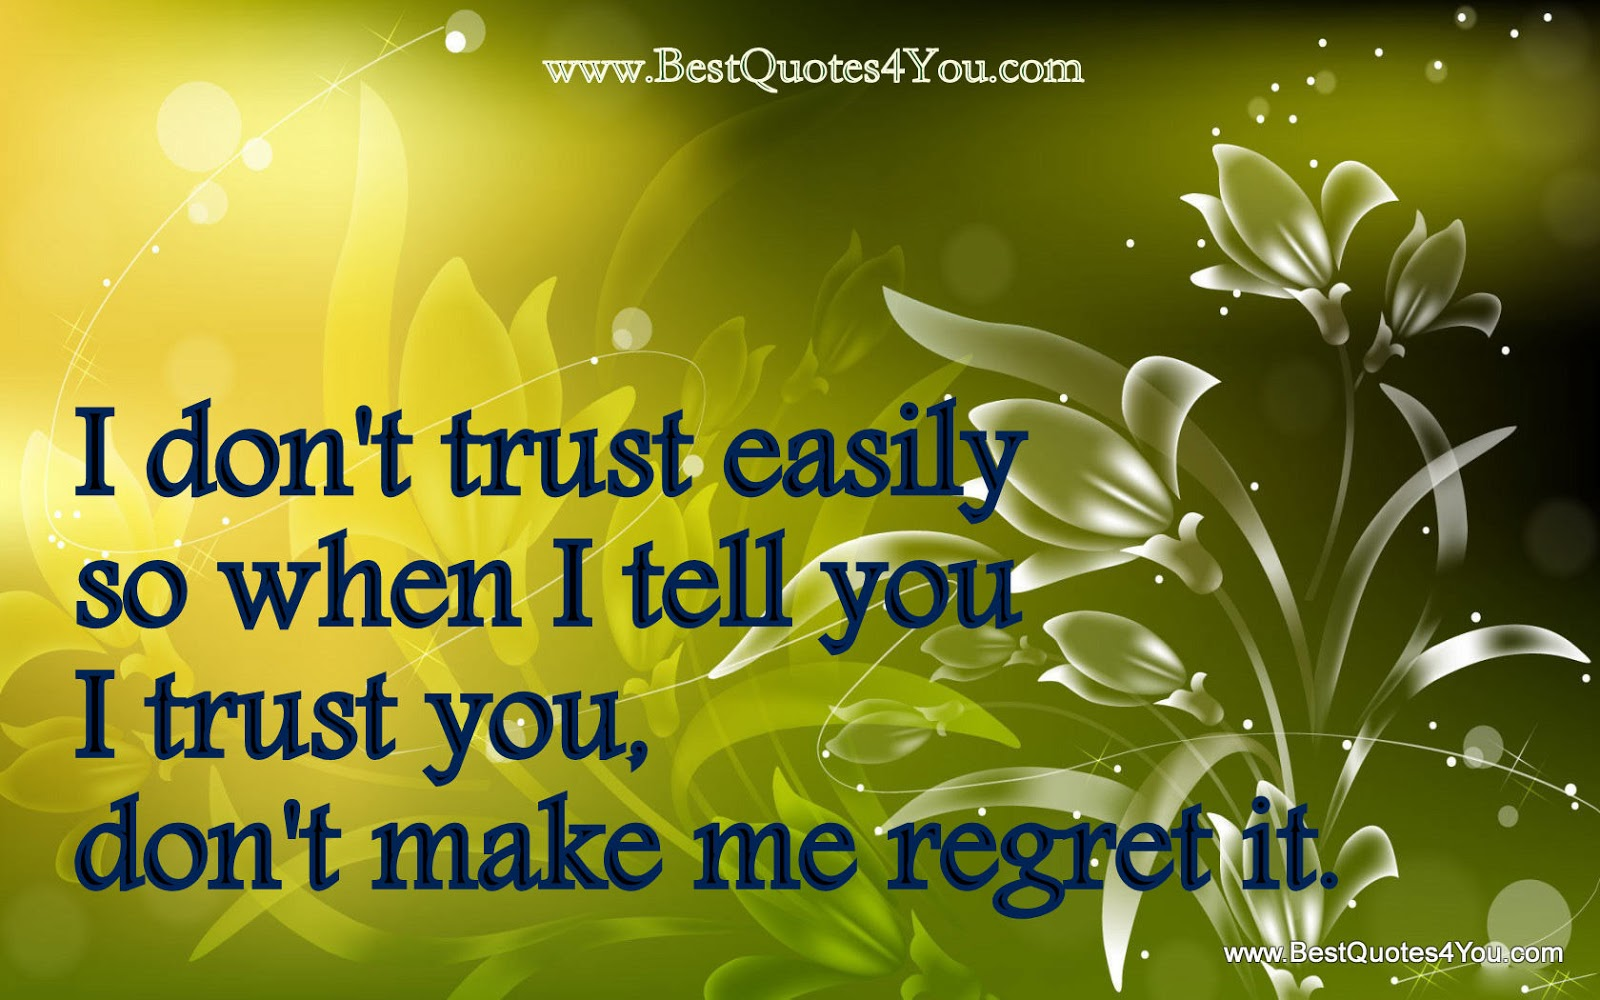 Trust quote trusting quotes trust quotes love Best 2 Travel Wallpaper